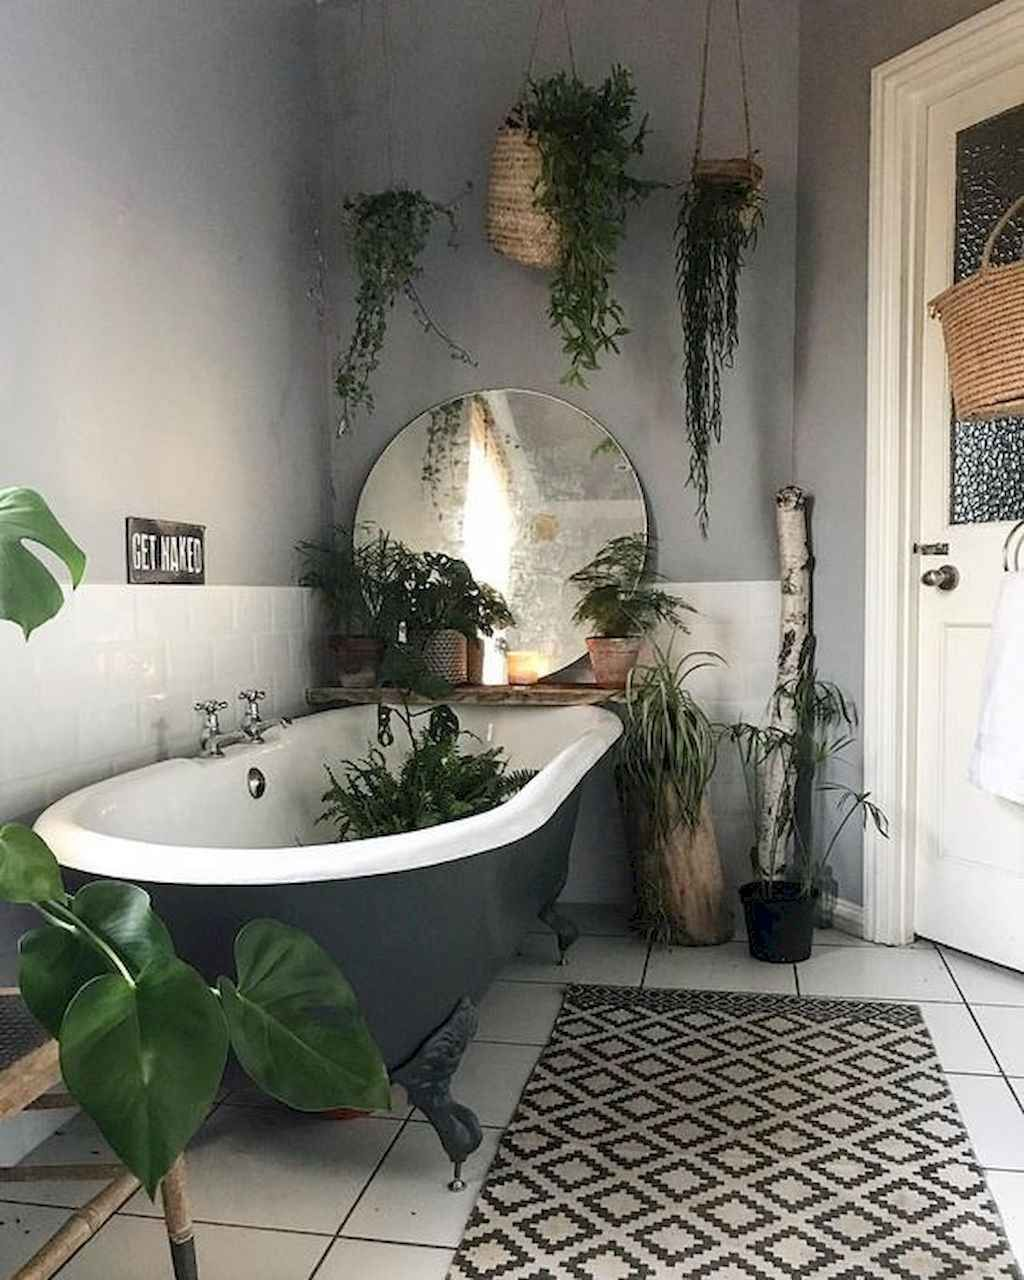 Cool 50 Cool Small Master Bathroom Remodel Ideas Source Link Https Decortutor Com 6515 50 Cool Small Ma Bathroom Plants Decor Bathroom Plants Big Bathrooms